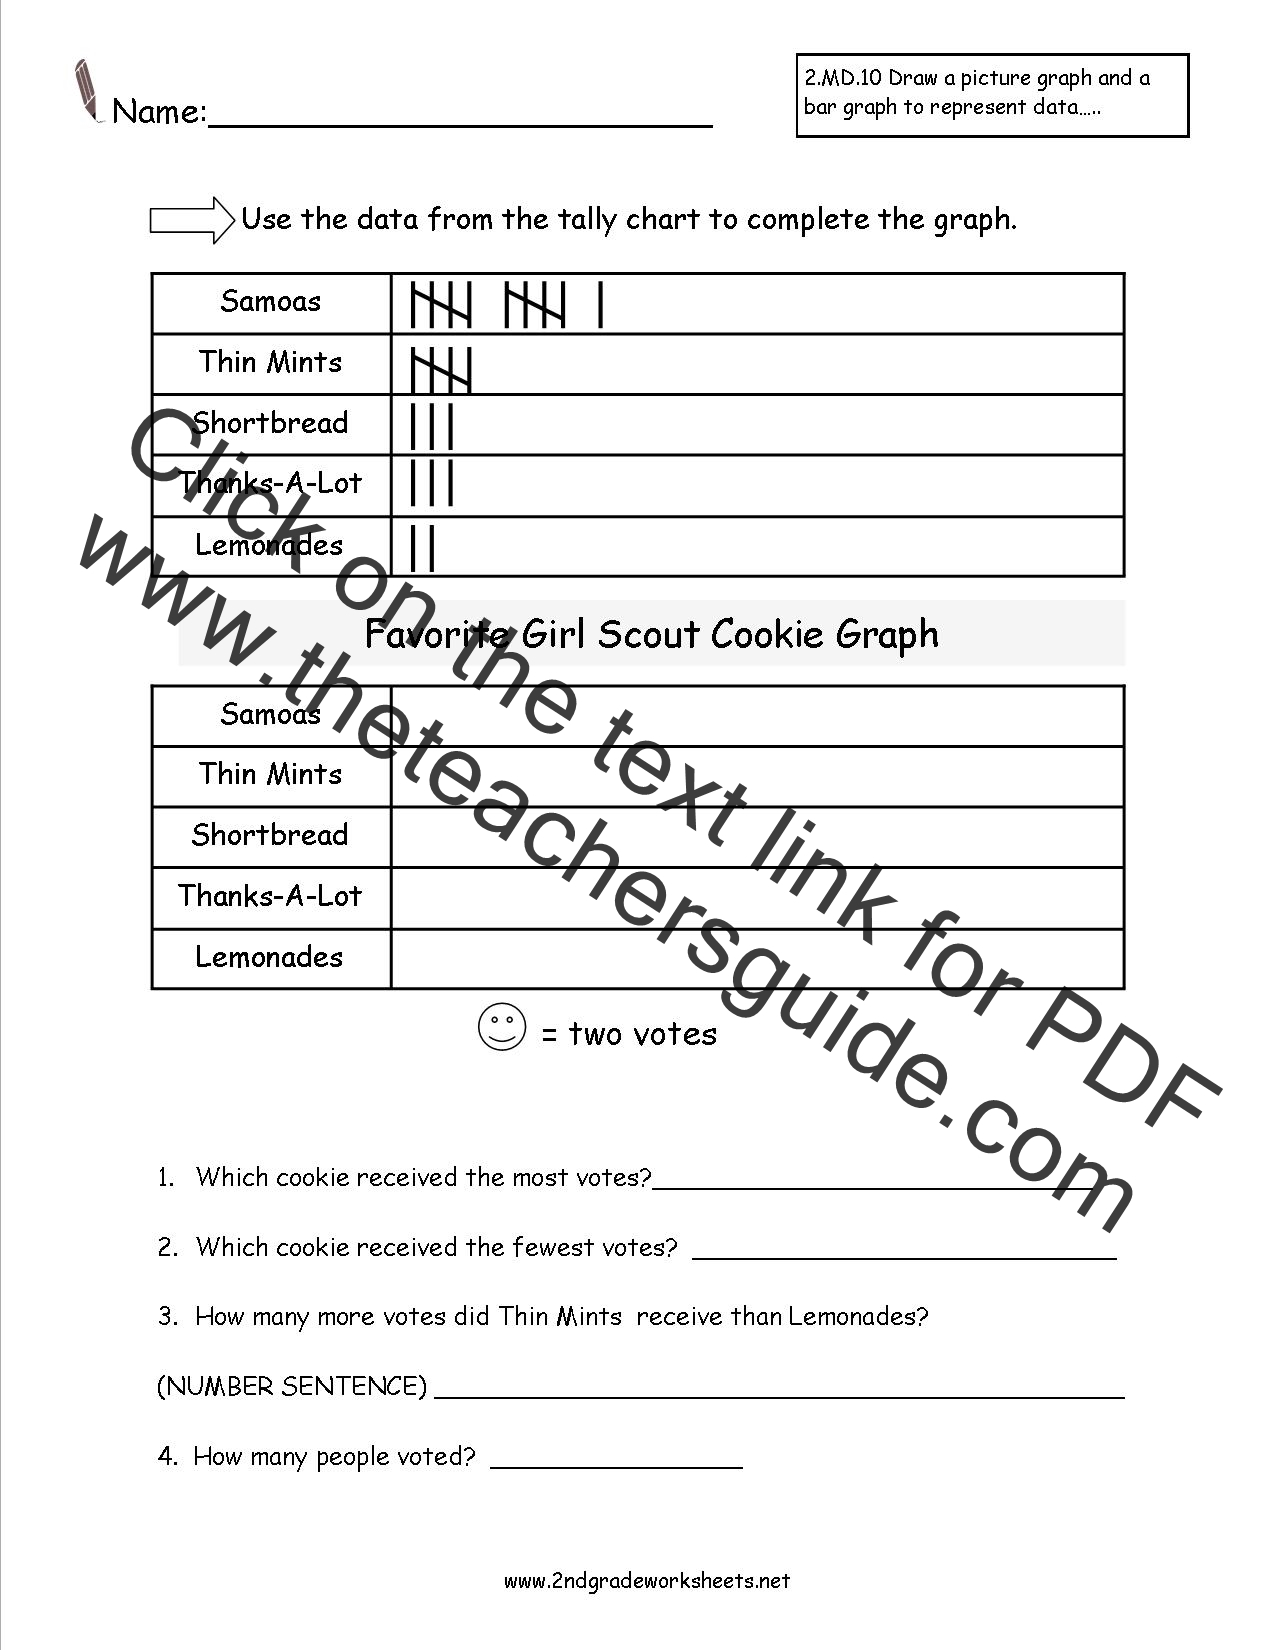 worksheet Create Worksheets second grade reading and creating pictograph worksheets favorite girl scout cookie pictograph